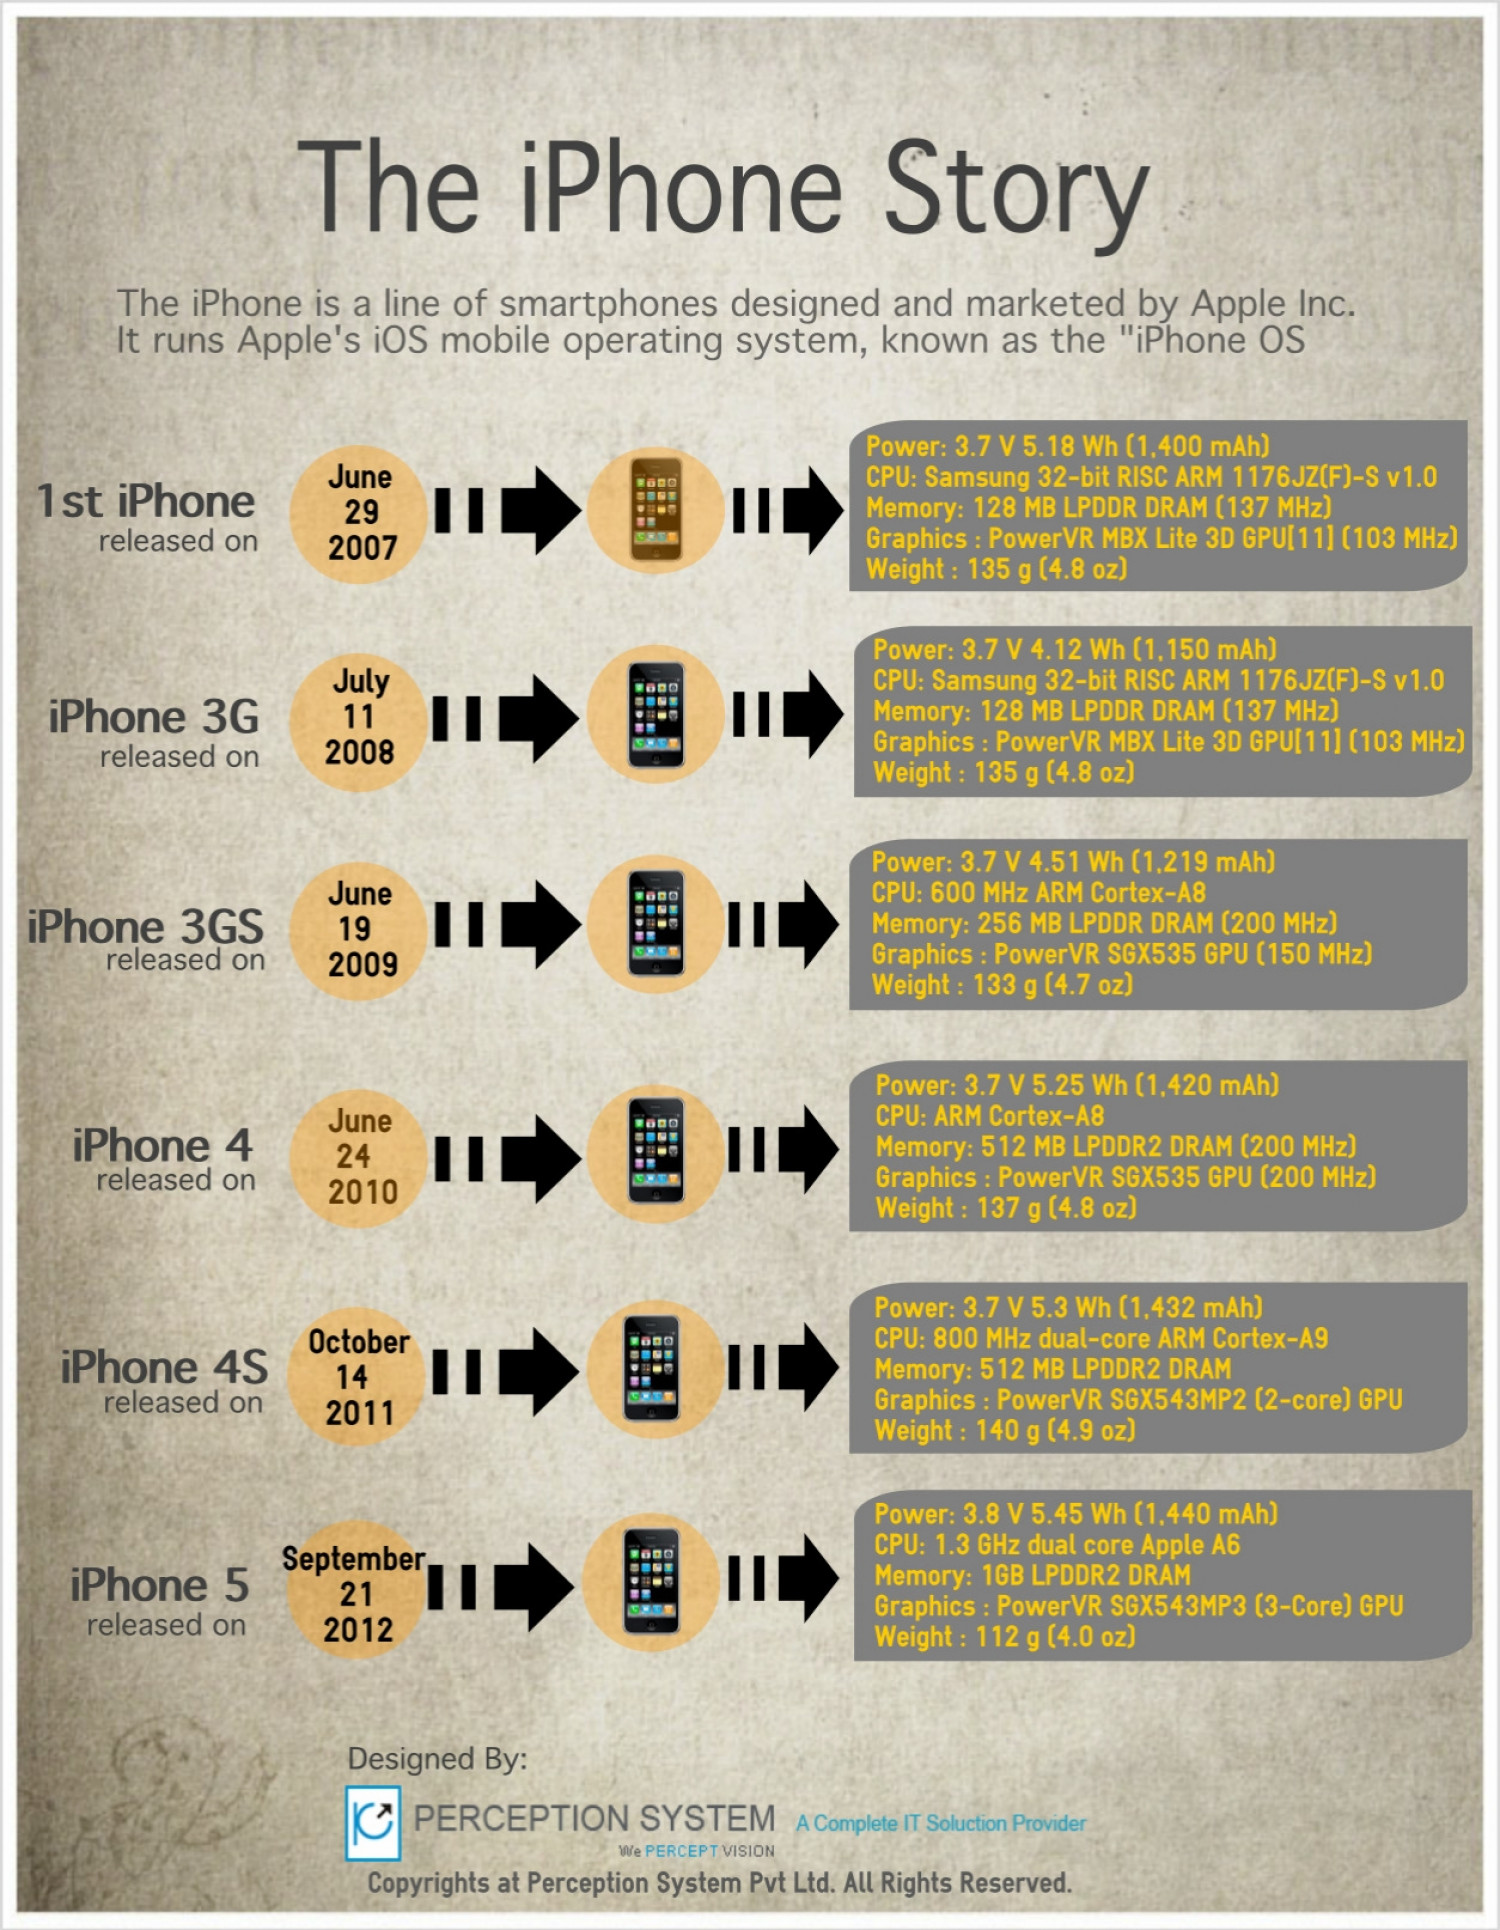 The iPhone Story Infographic